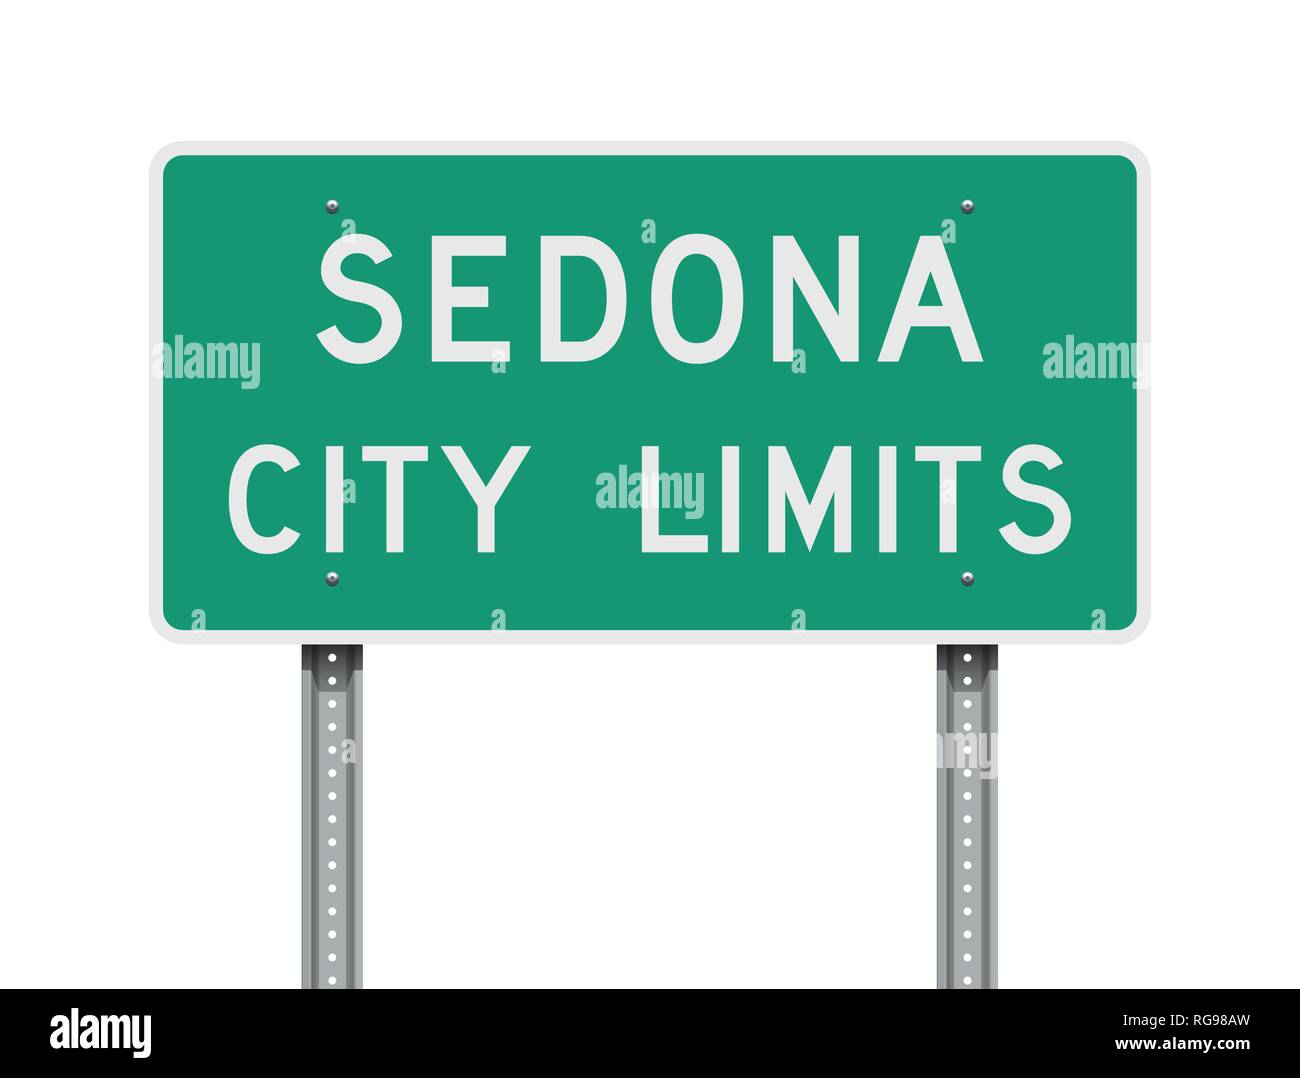 Vector illustration of the Sedona City Limits green road sign - Stock Image